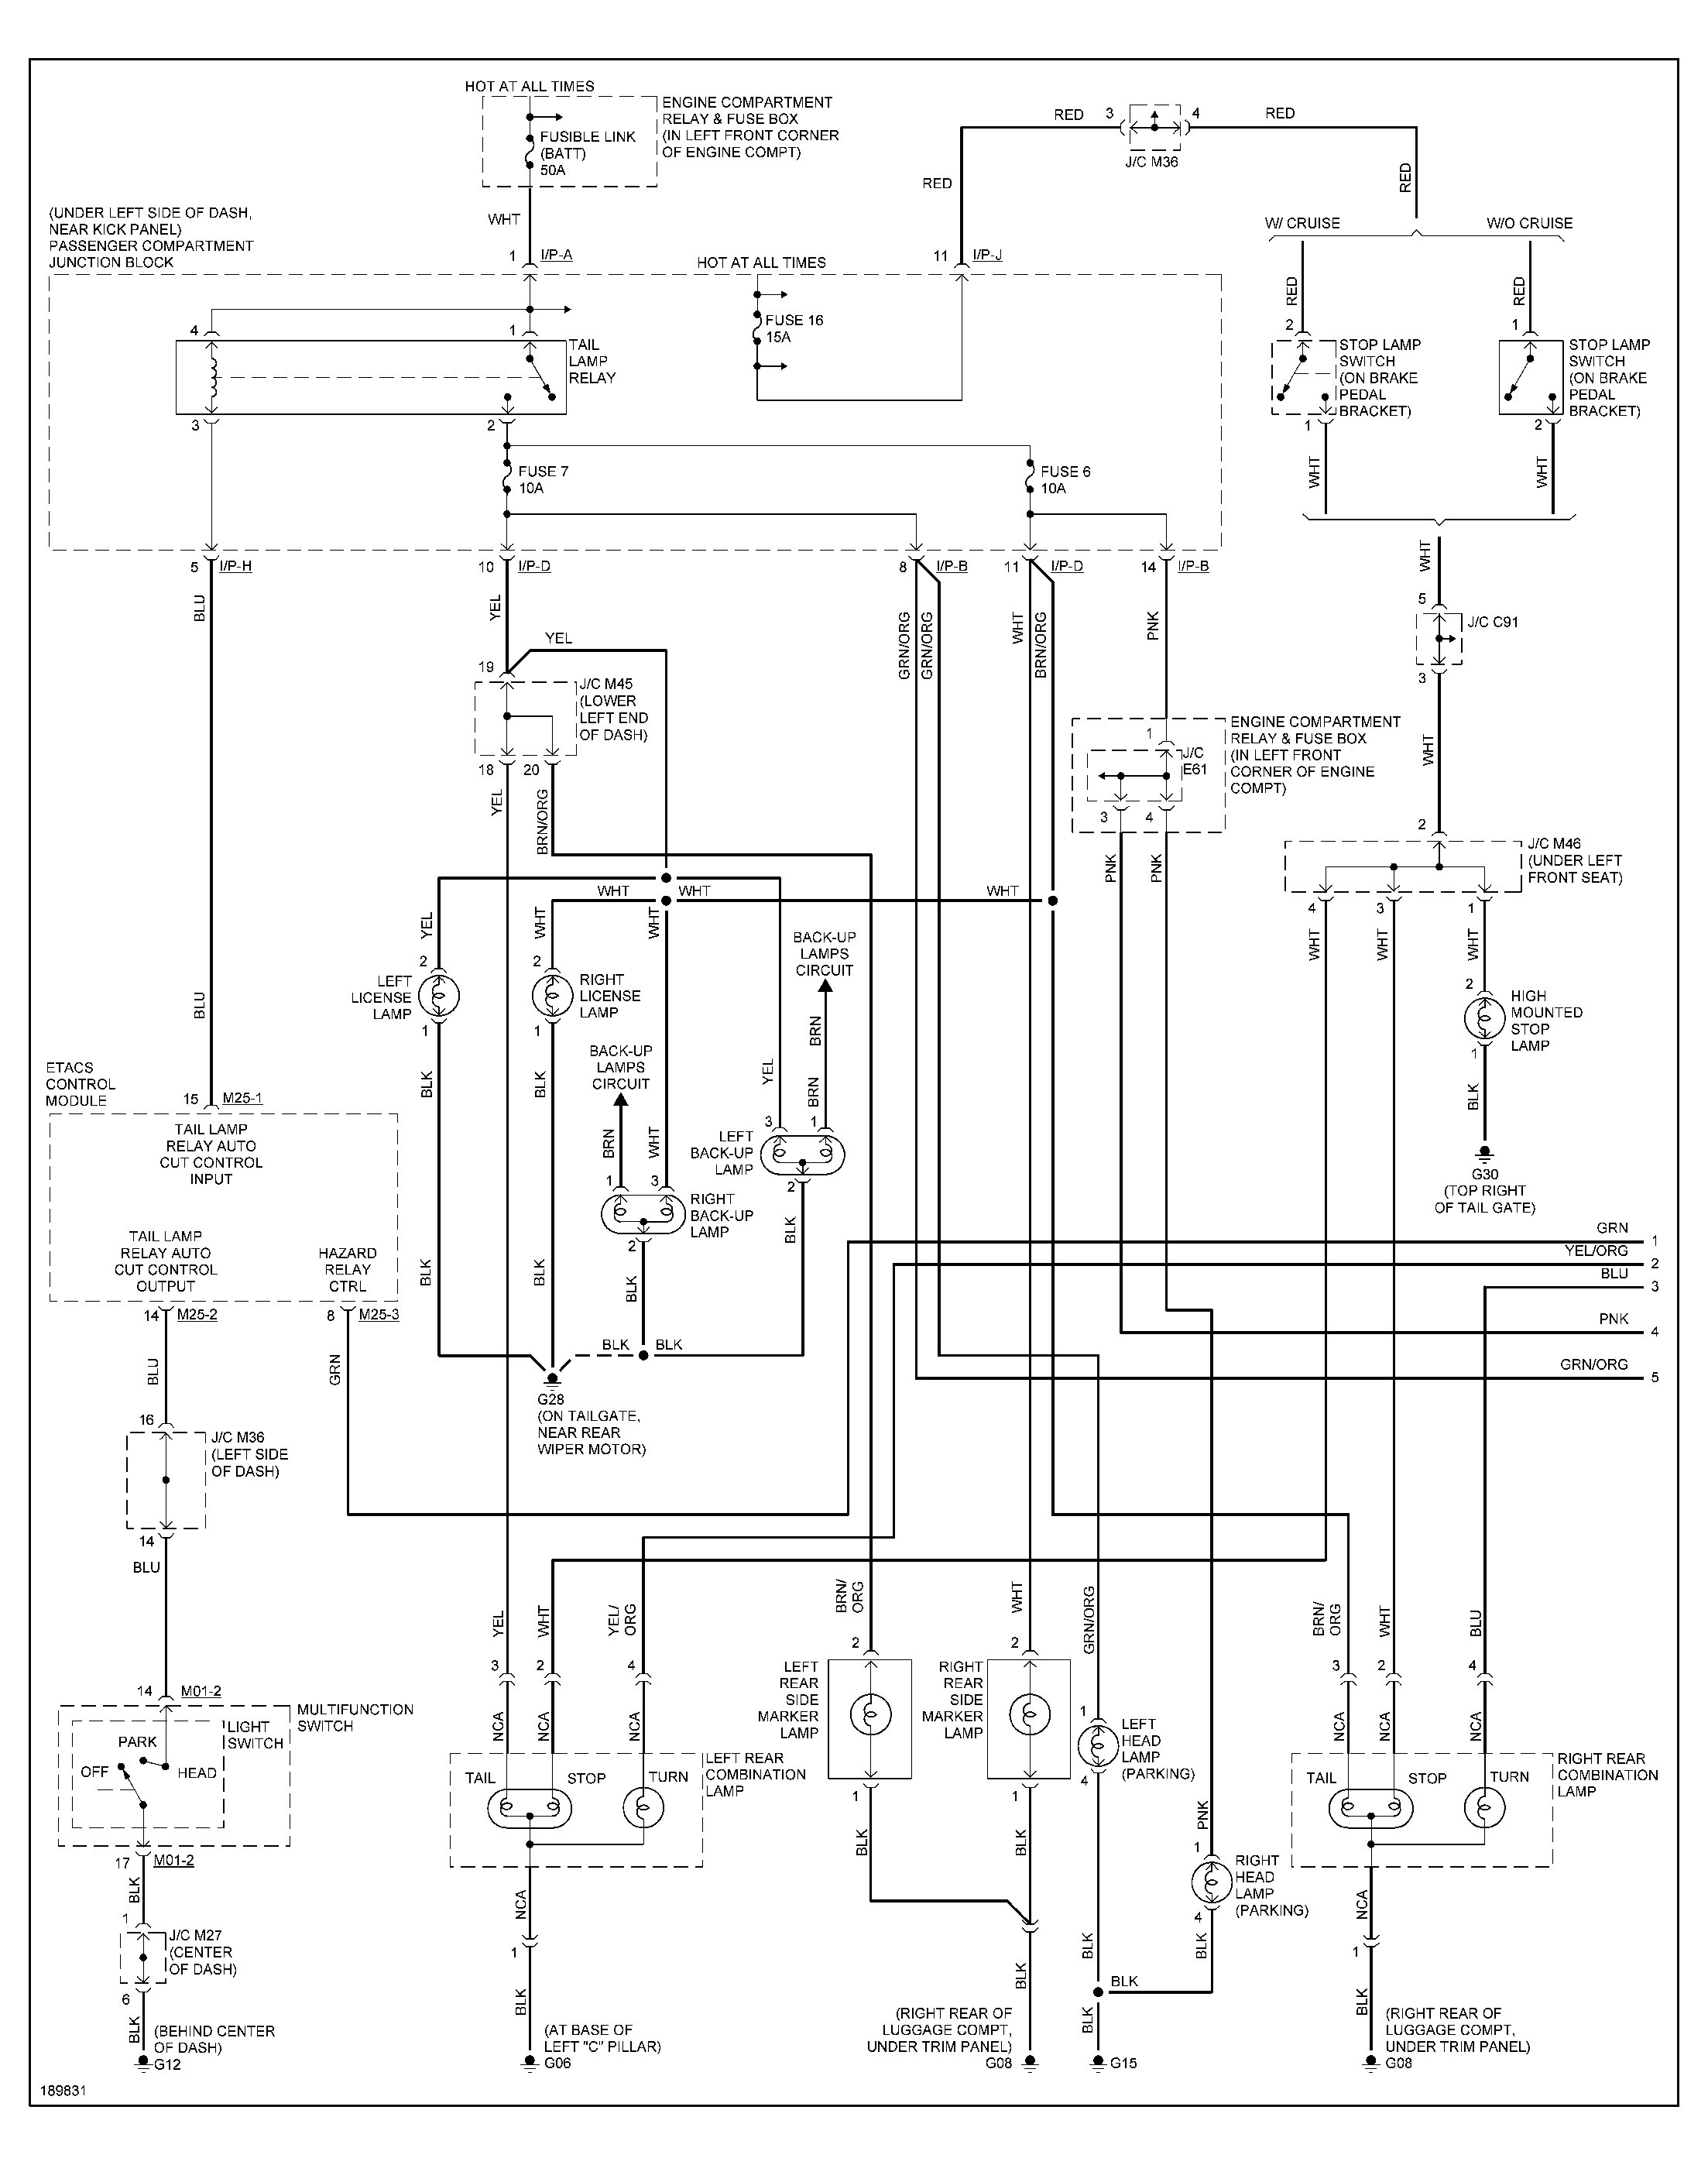 2000 Hyundai Elantra Engine Diagram 2005 Hyundai Accent Engine Diagram Car 04 Hyundai Accent Engine Of 2000 Hyundai Elantra Engine Diagram